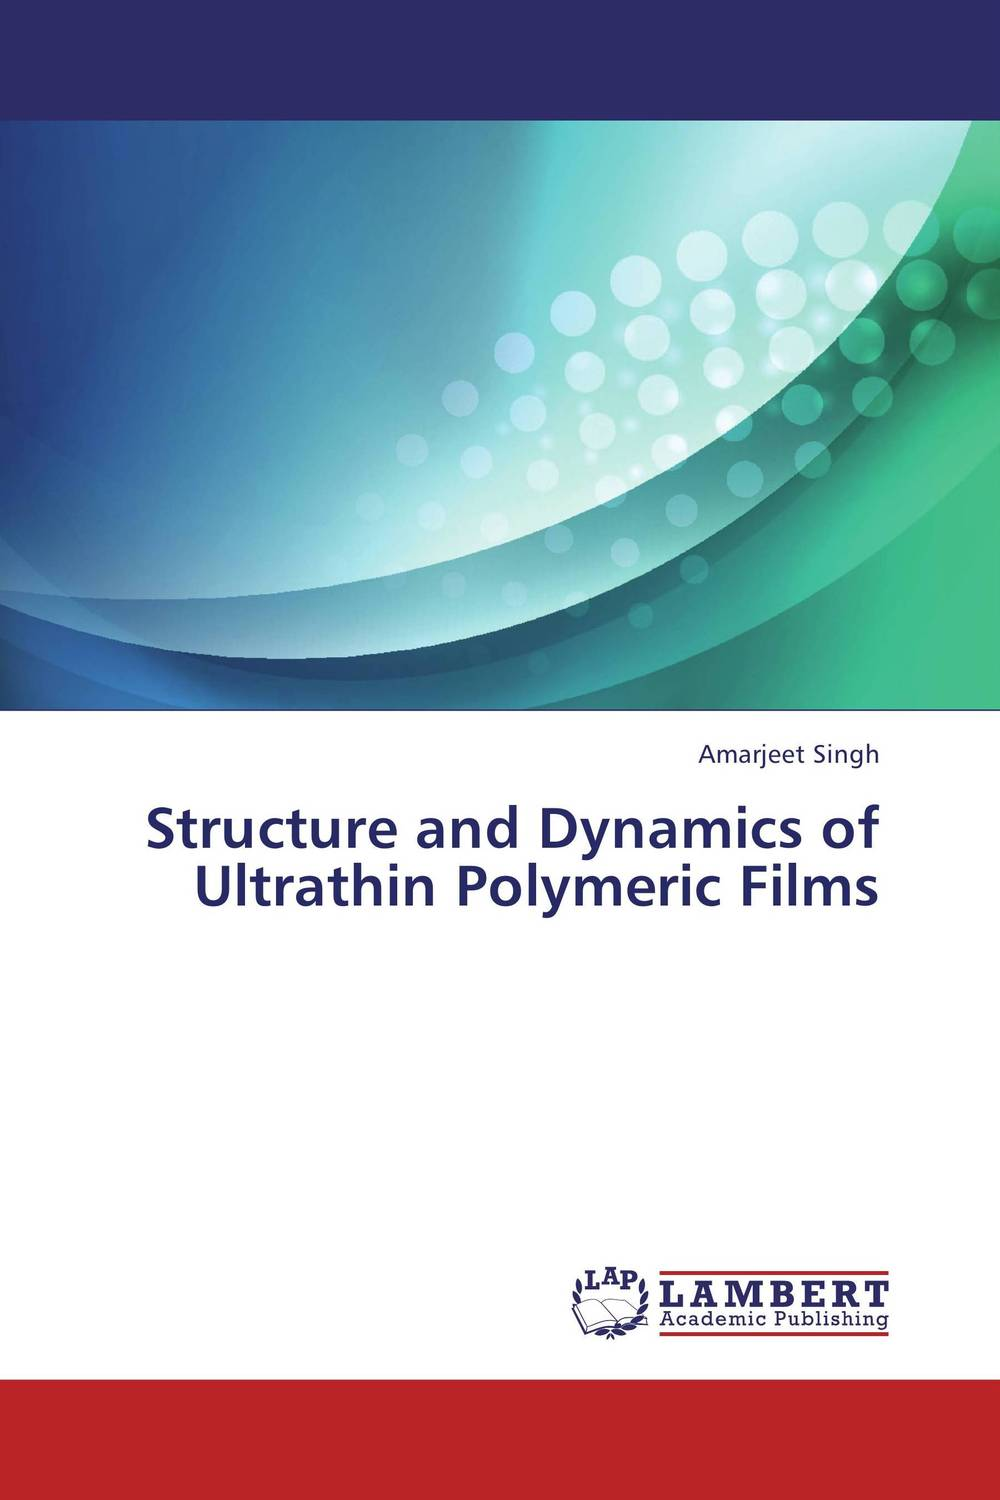 Structure and Dynamics of Ultrathin Polymeric Films